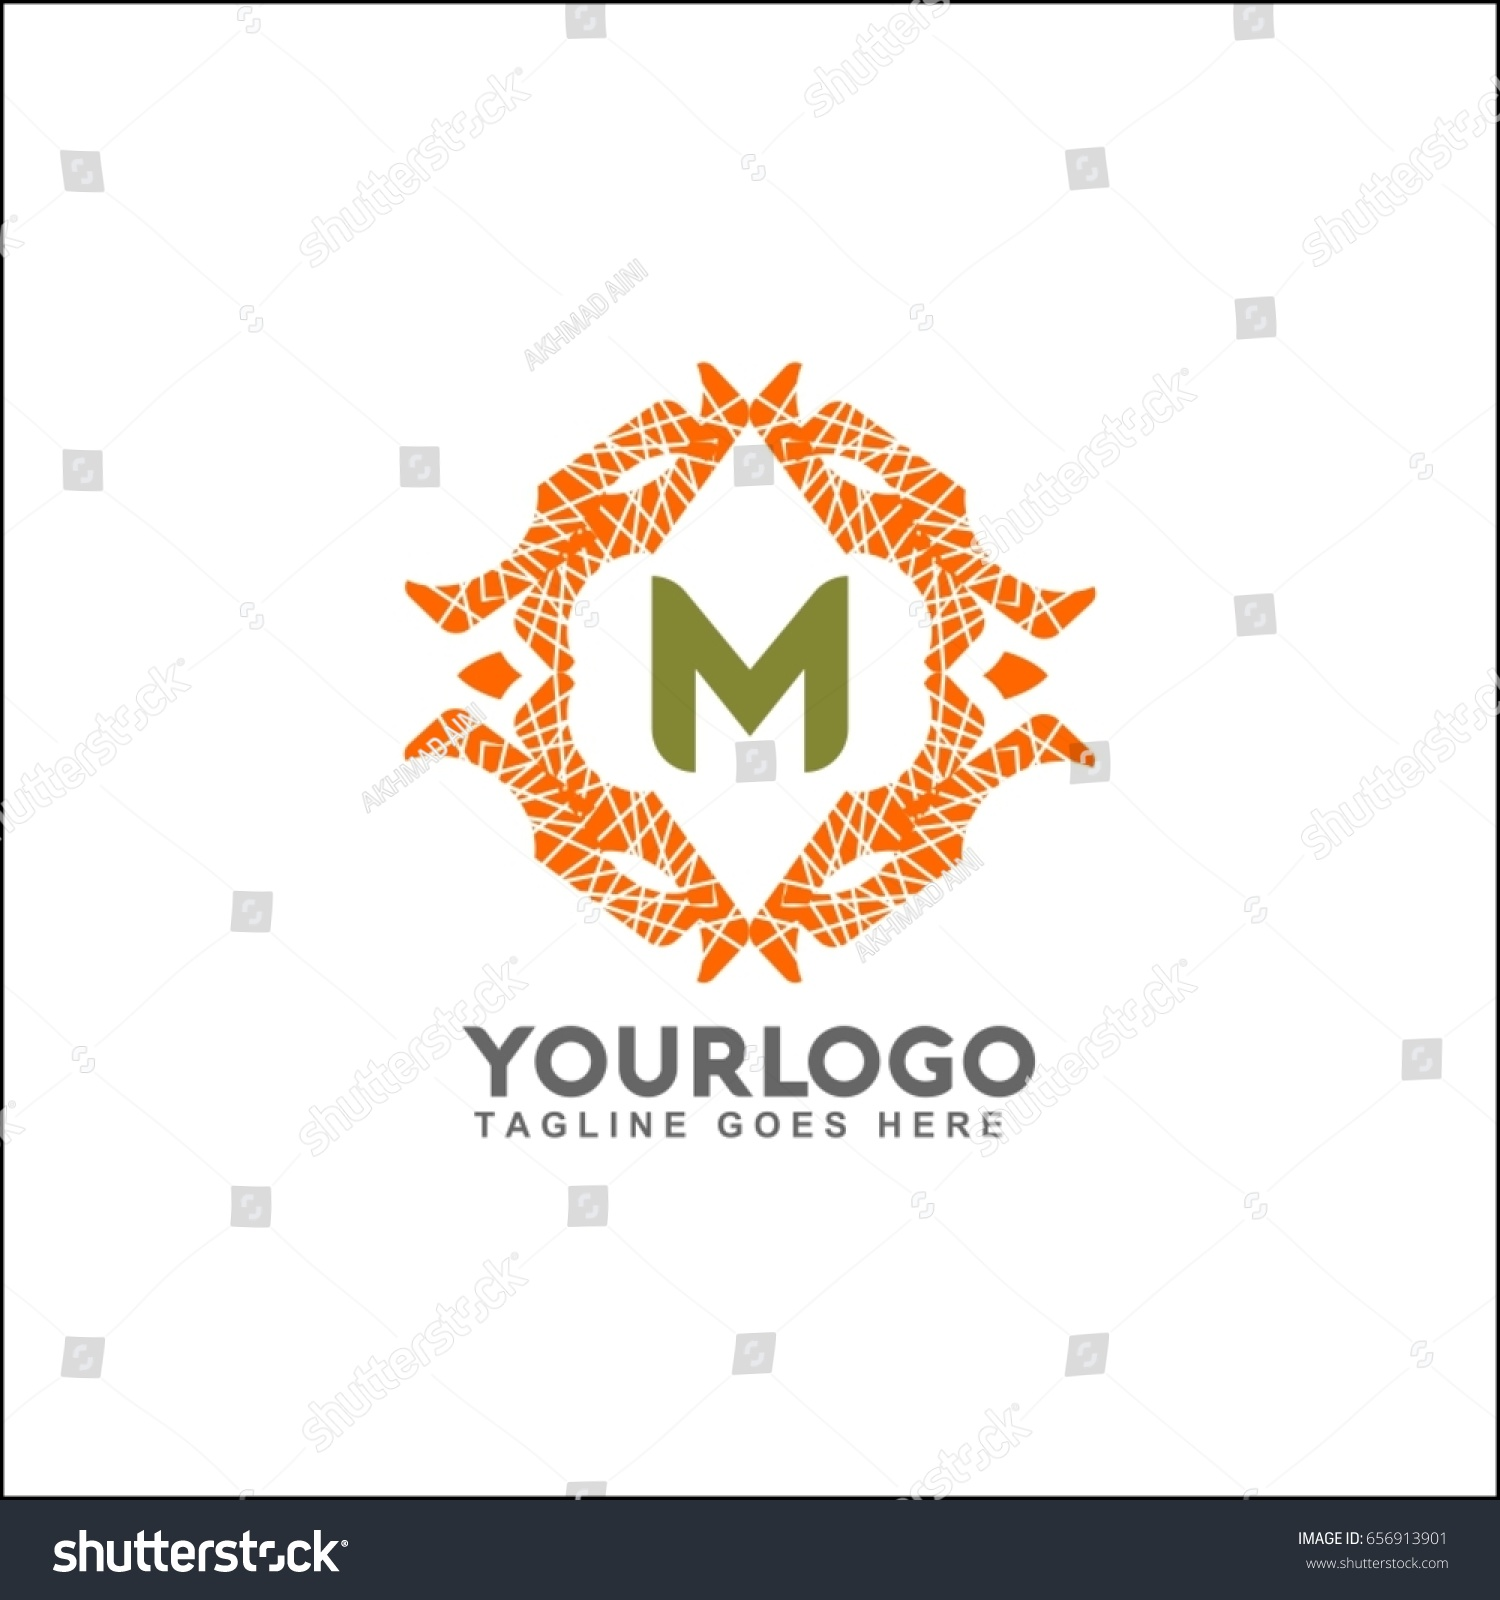 M letter emblem weaving circle monogram stock vector hd royalty m letter emblem of the weaving circle monogram design for royalty business card thecheapjerseys Image collections